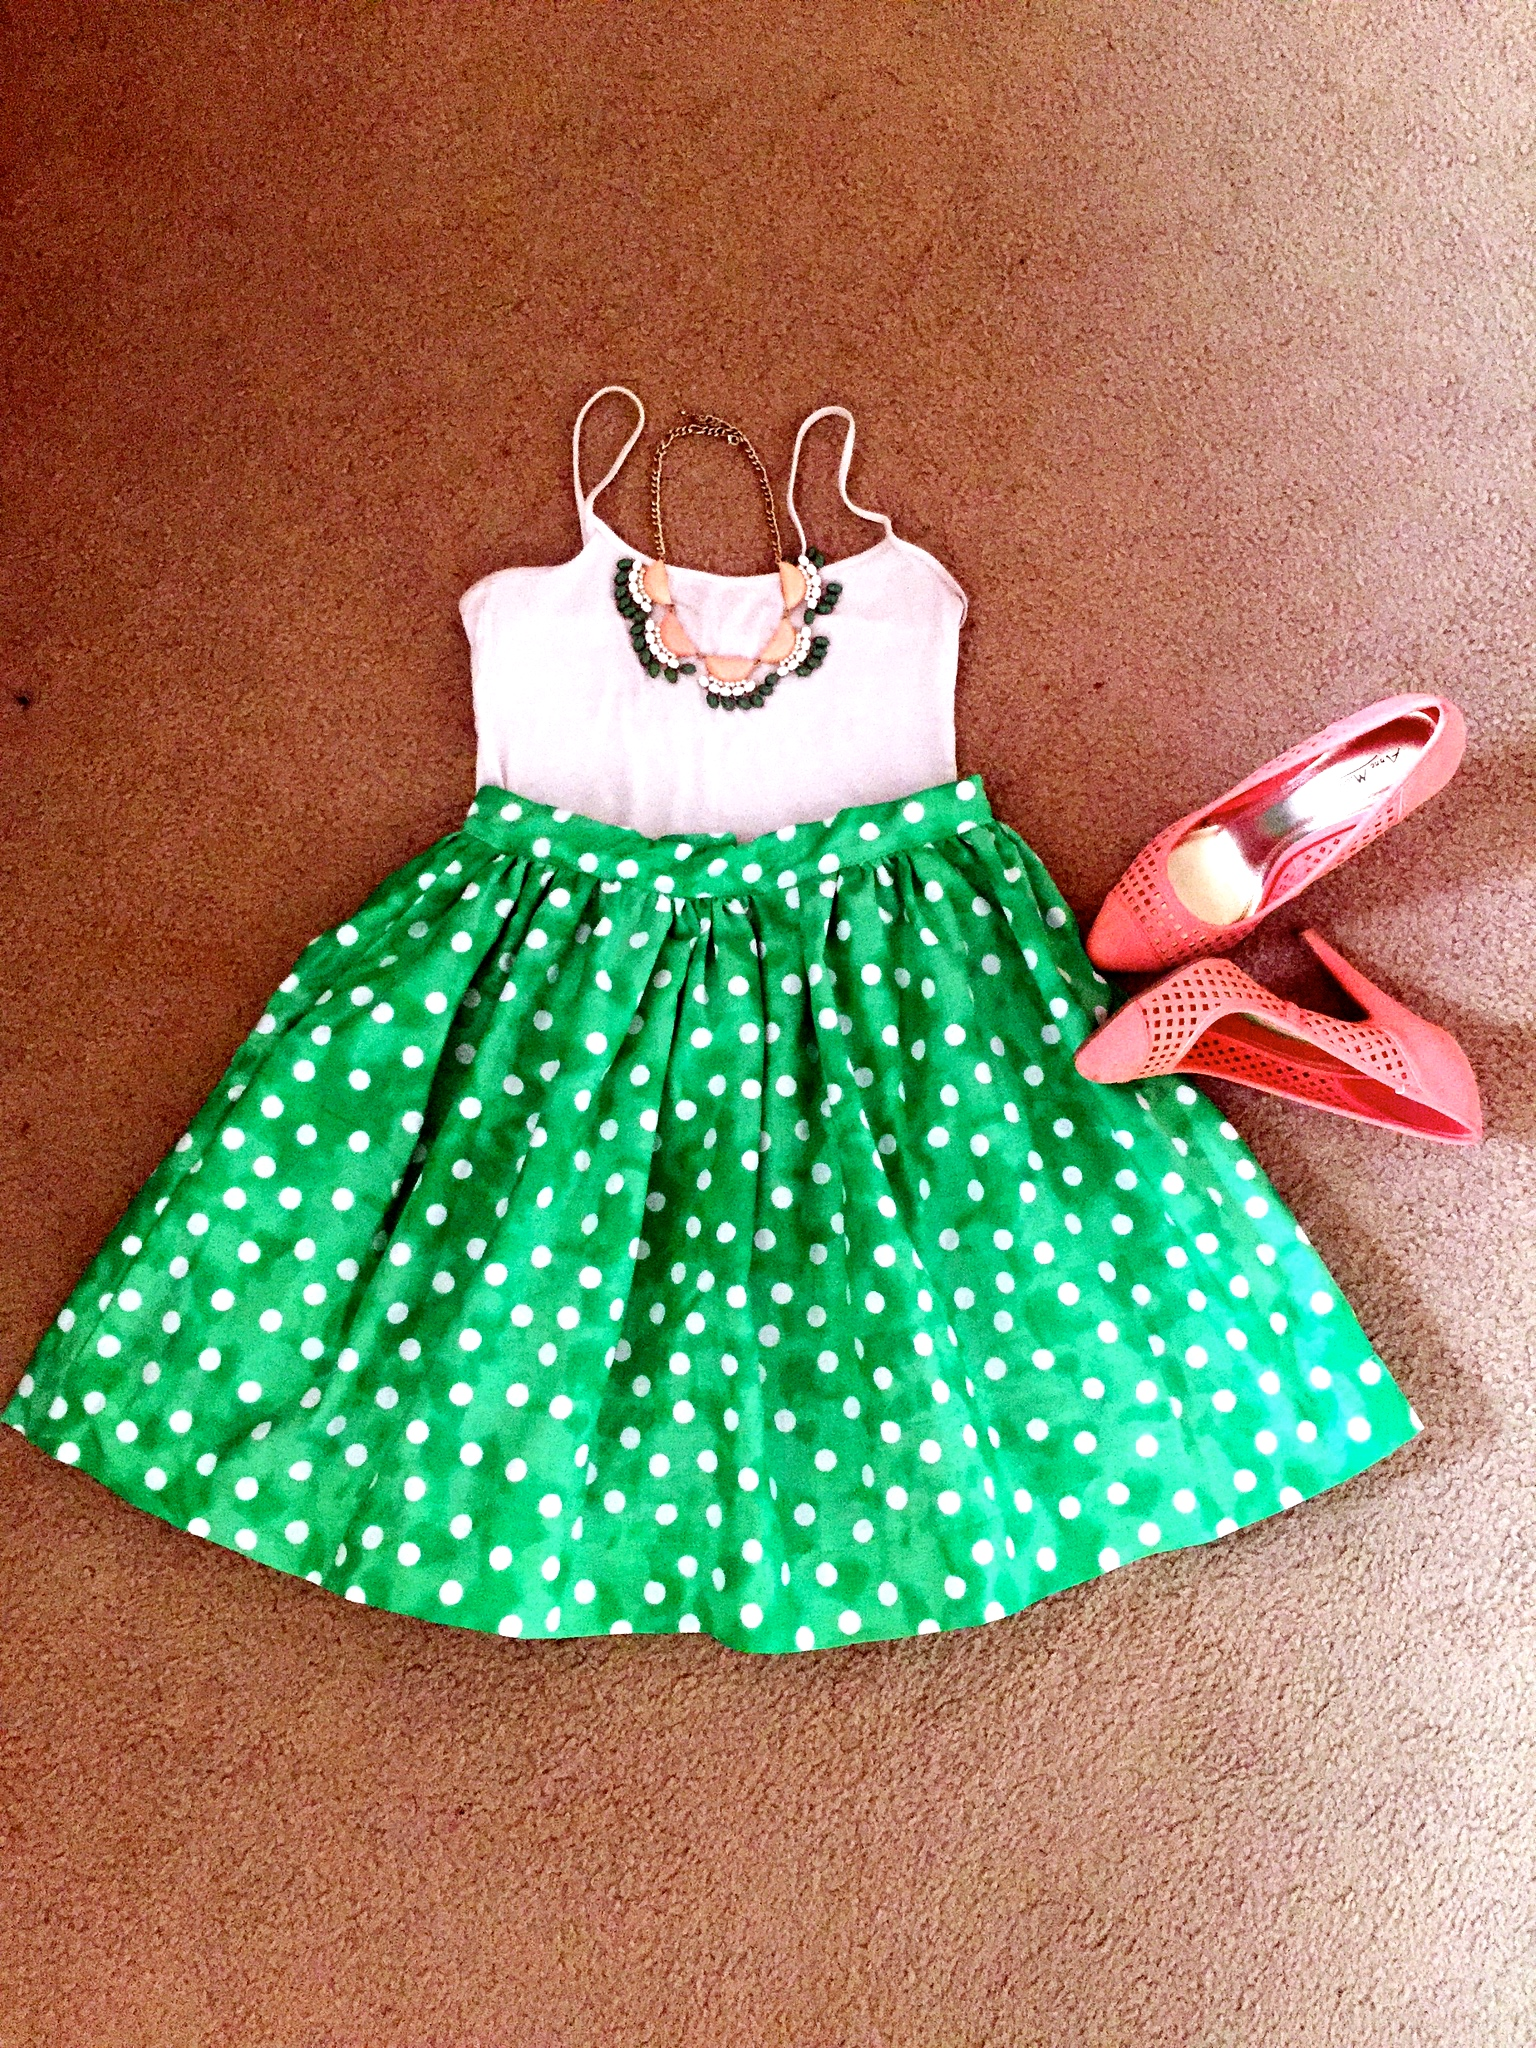 Polka Dot Skirt- DIY;  Shoes - Anne Michelle; Necklace - Charlotte Russe; Tank top - Forever 21